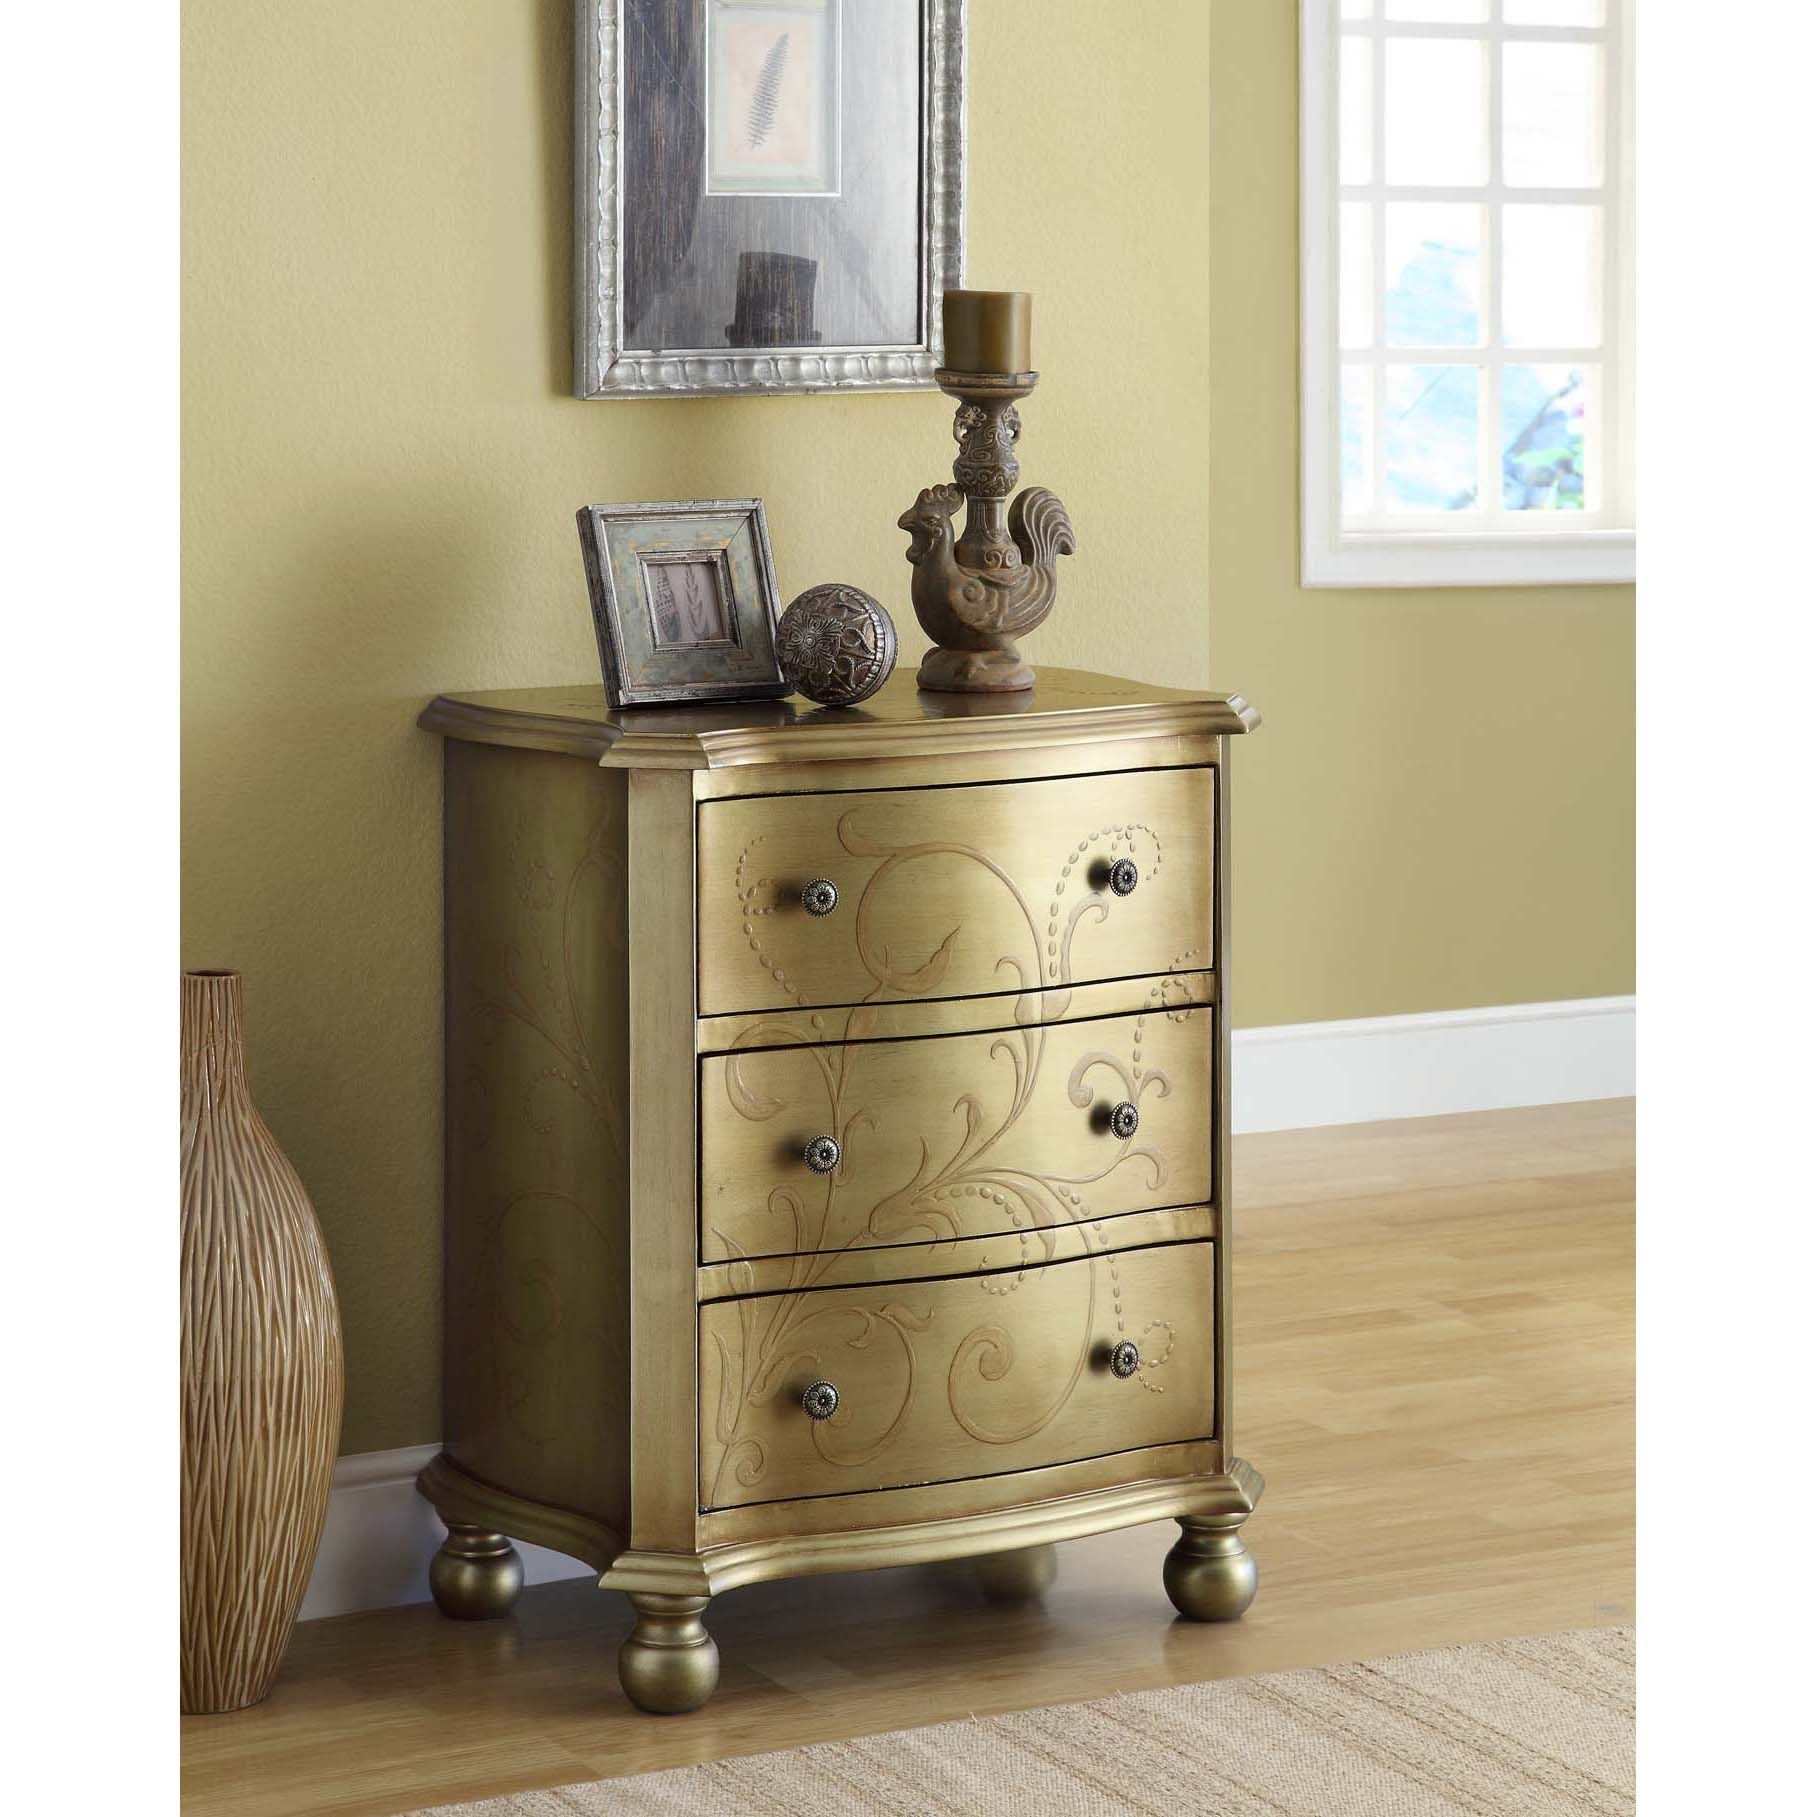 Nice Monarch Transitional 3 Drawer Bombay Chest   Gold   An Opulent Gold Finish  And Stylized Flower Design Make The Monarch Transitional 3 Drawer Bombay  Chest ... Great Pictures